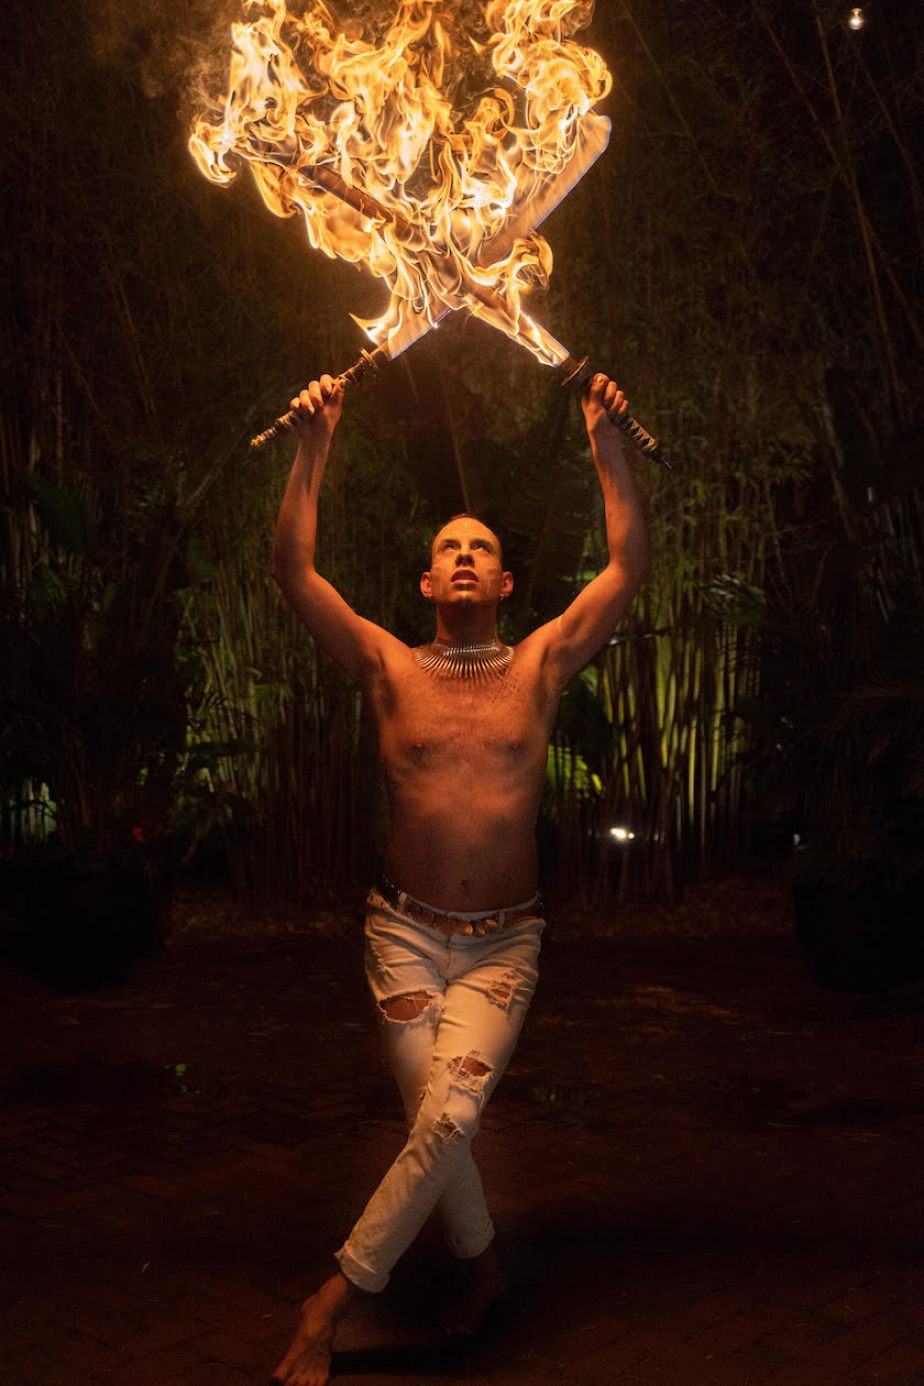 A photo of a man with no shirt and white pants performing with two sticks of fire crossed over his head.